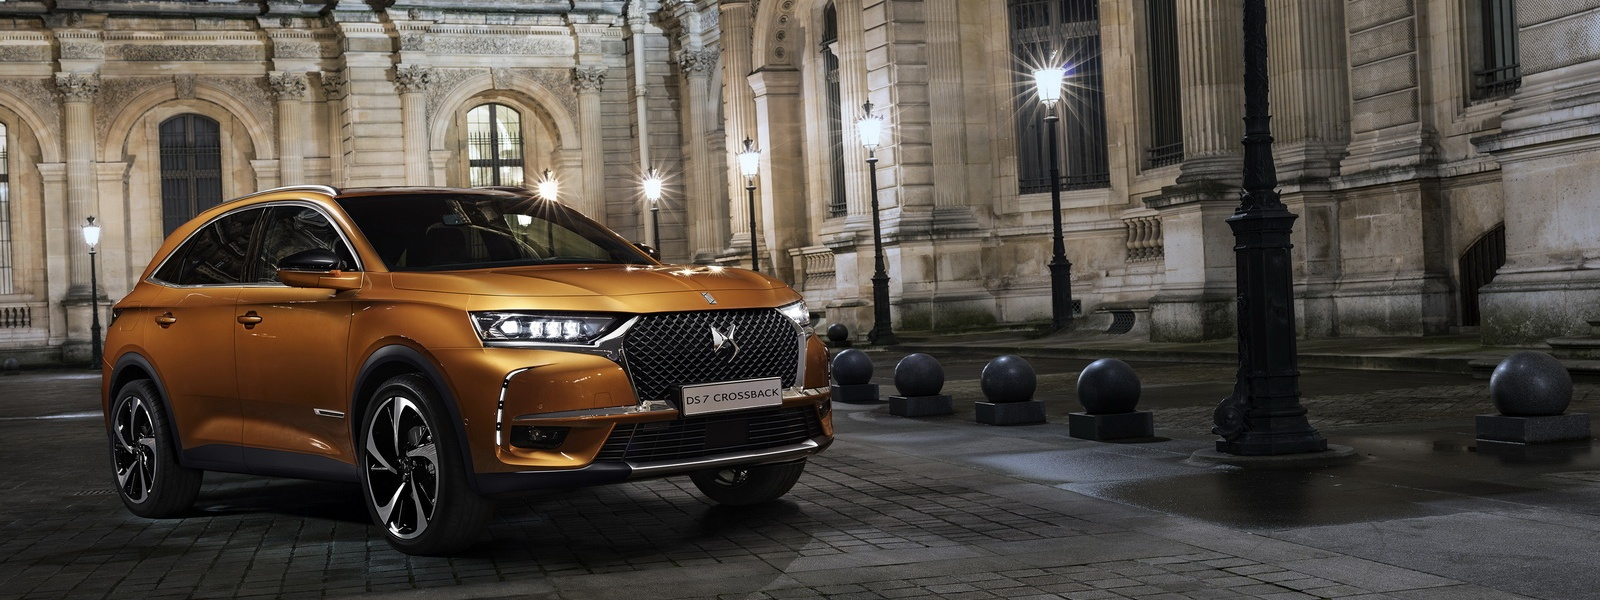 DS7-Crossback-20.jpg